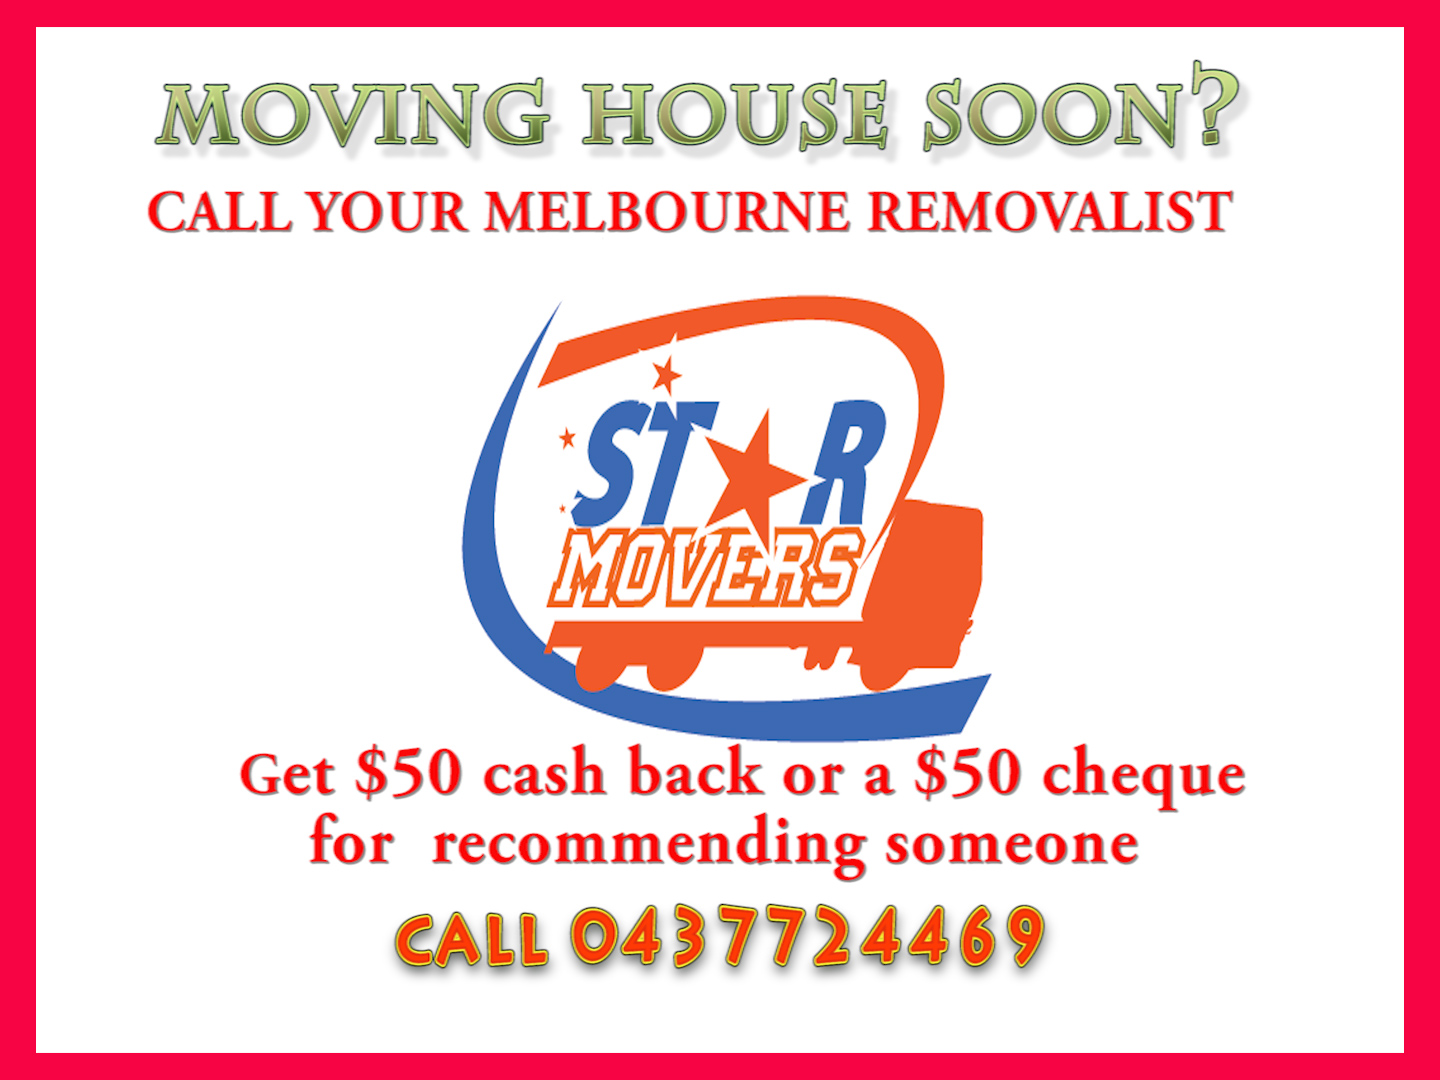 STAR MOVERS 4